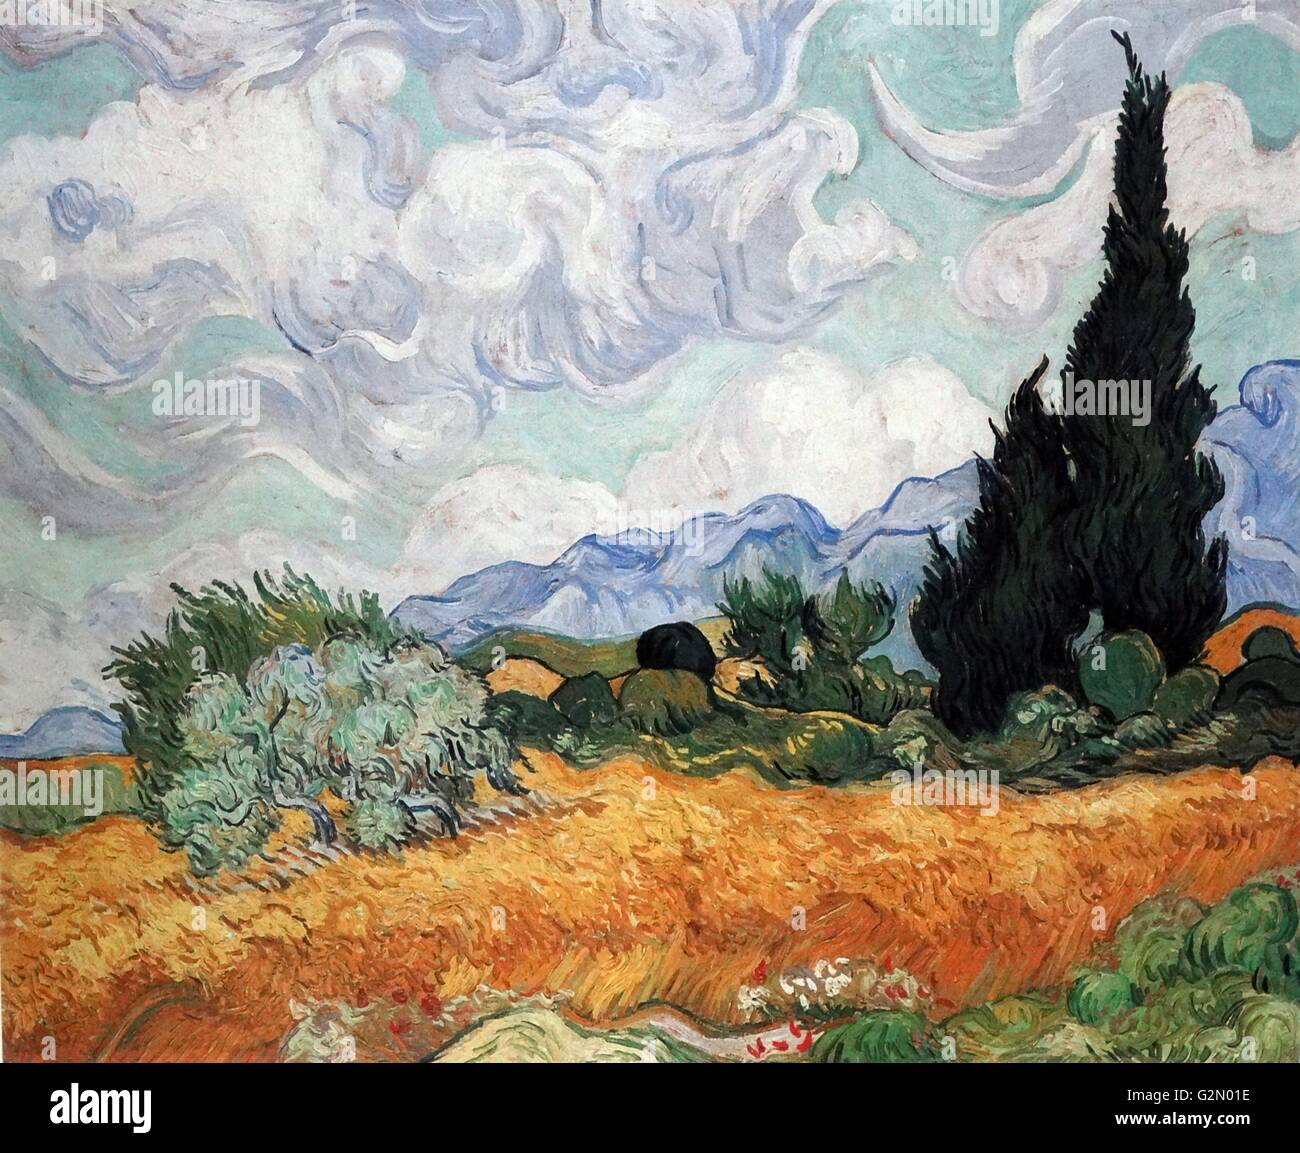 Vincent Van Gogh 'Wheat Field with Cypress'. - Stock Image